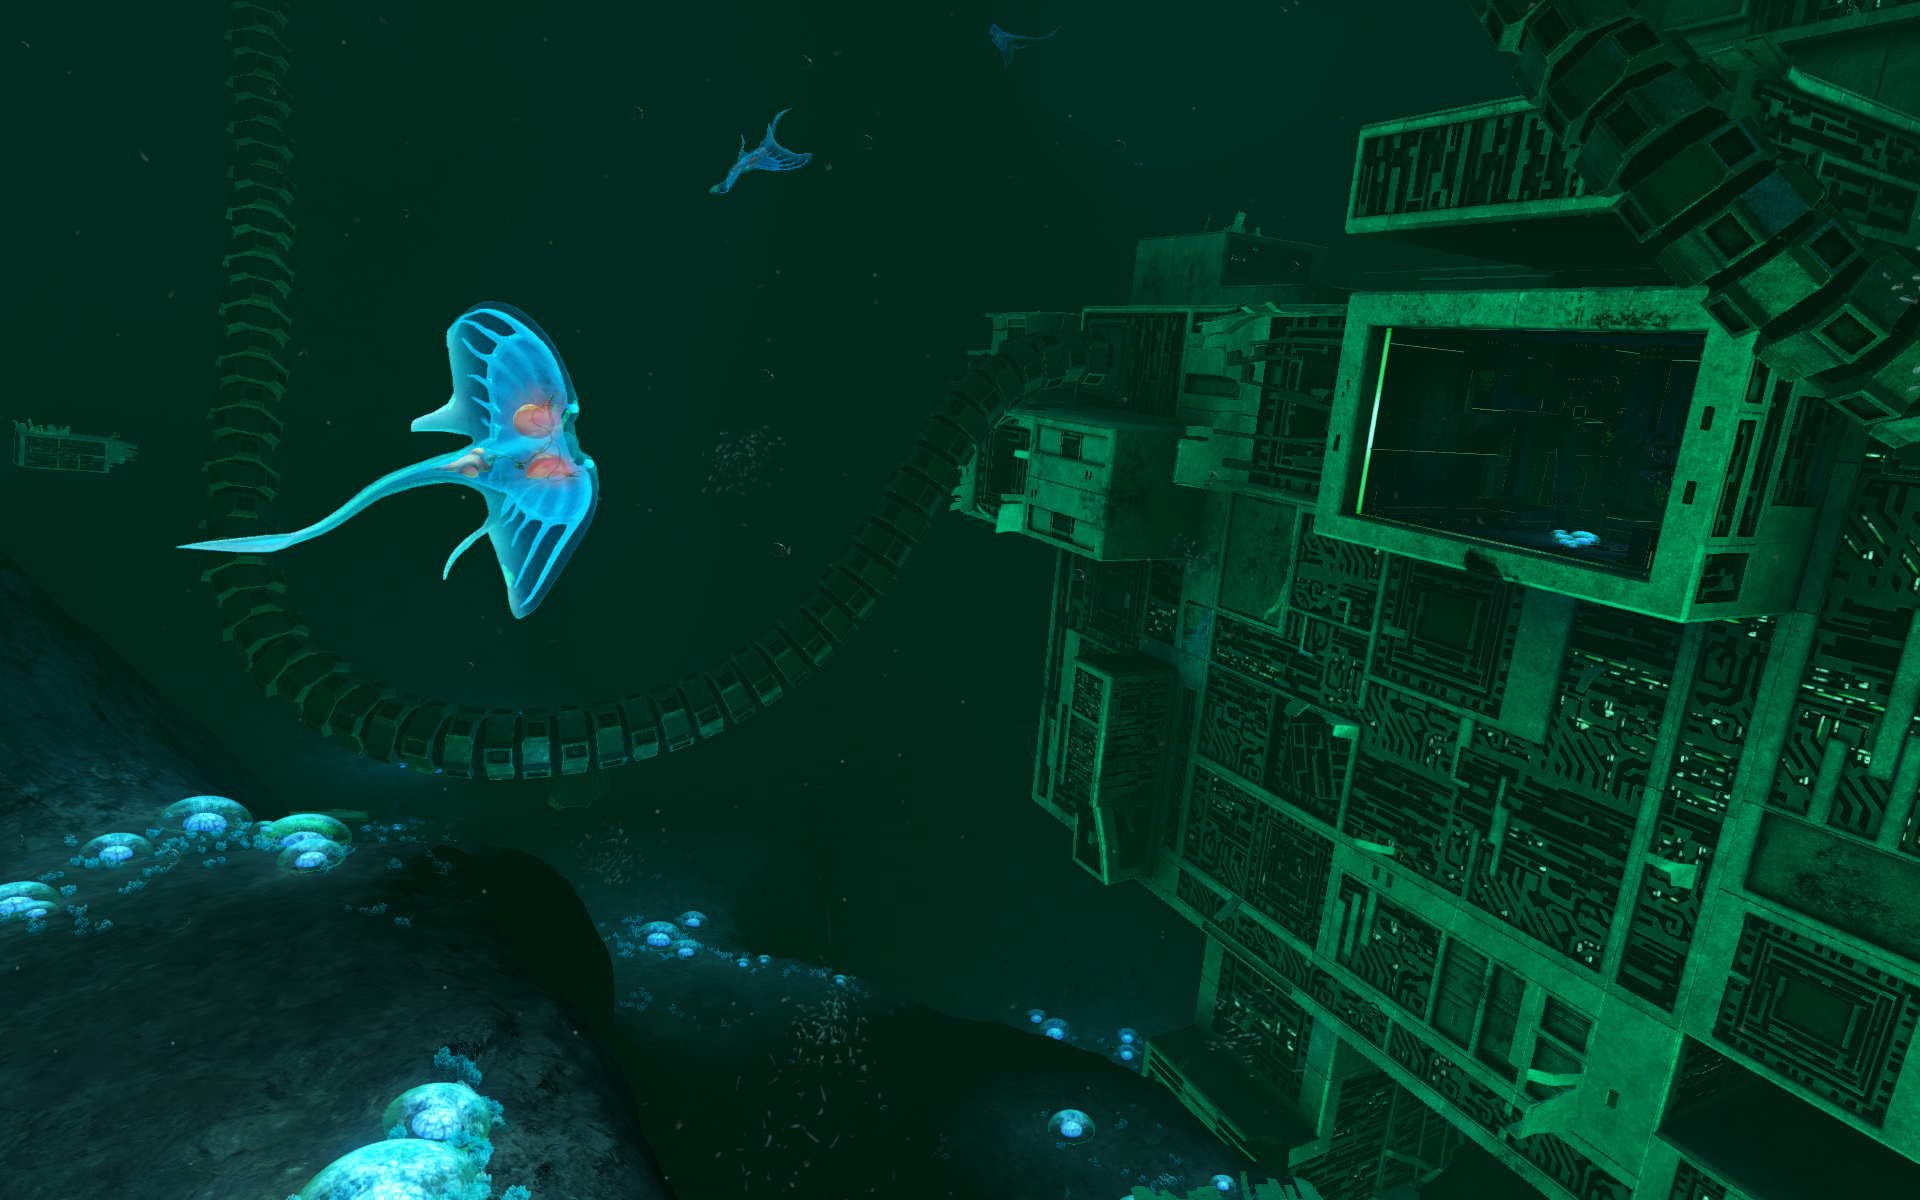 Subnautica Gamer Walkthroughs Subnautica how to find scanner room fragments subnautica is a under water survival game and heres a beginners guide how. gamer walkthroughs